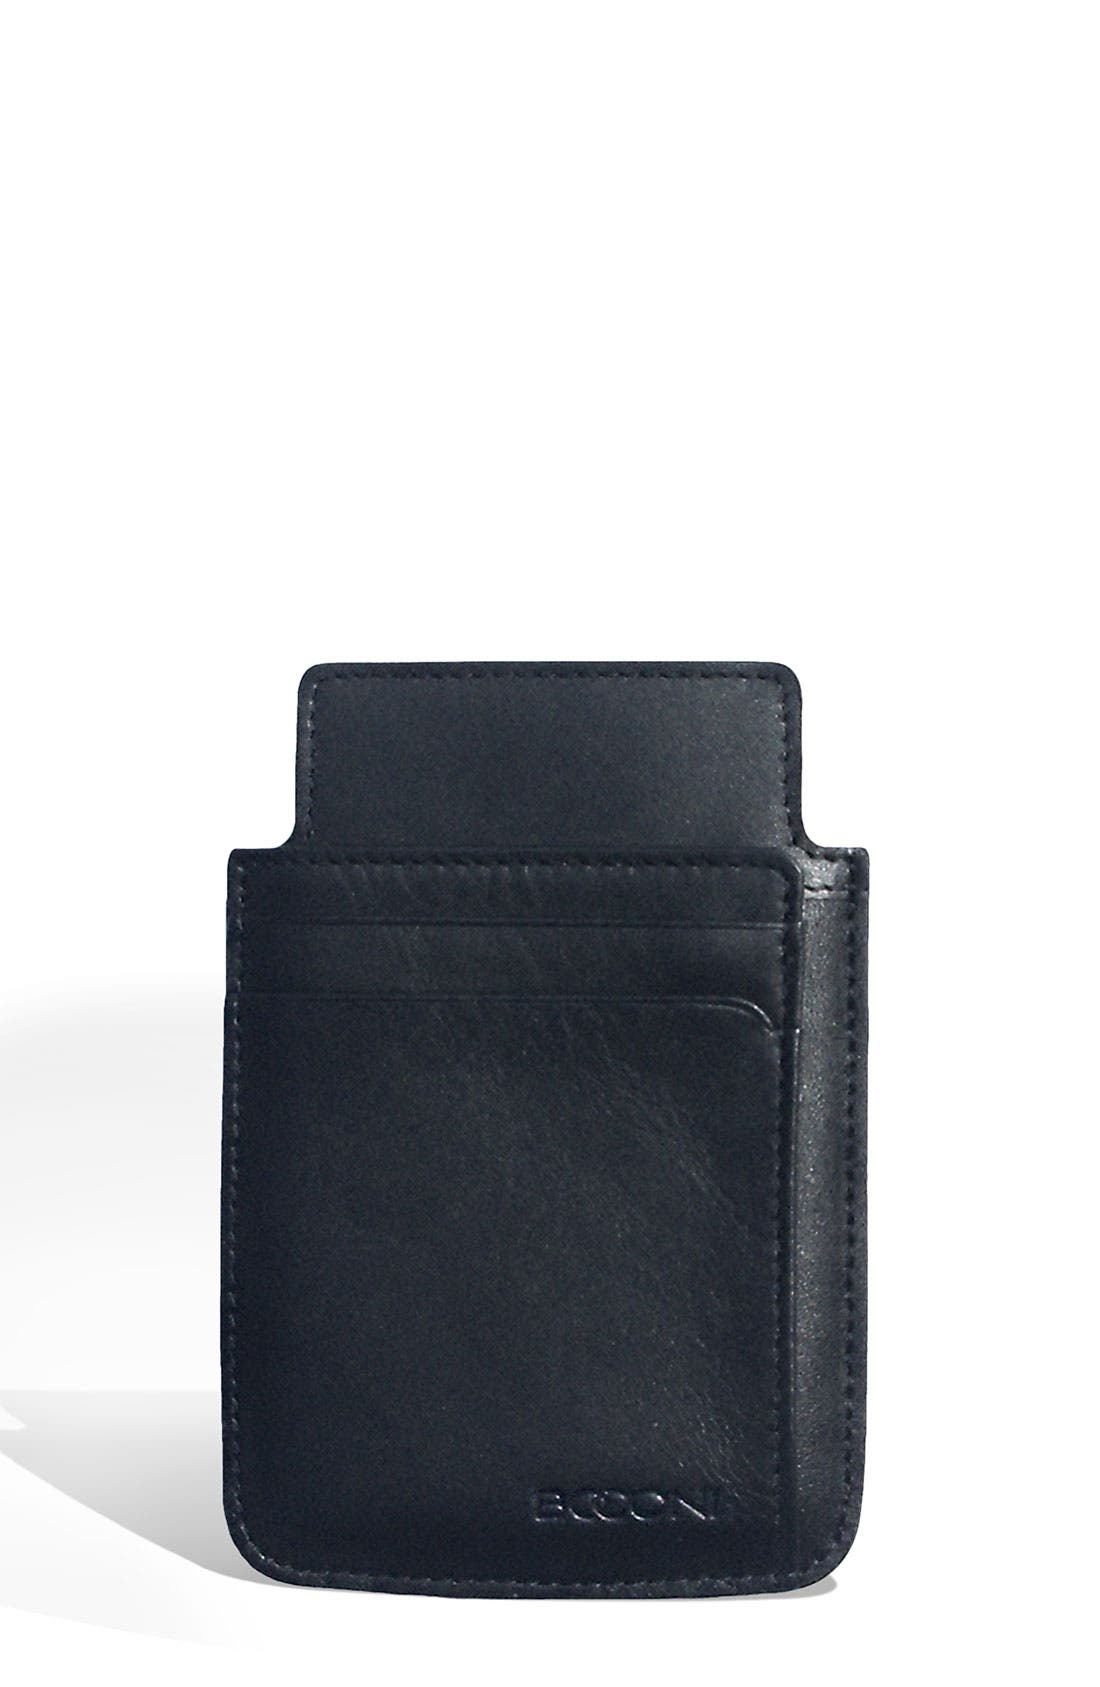 Alternate Image 1 Selected - Boconi Leather Smartphone Sheath